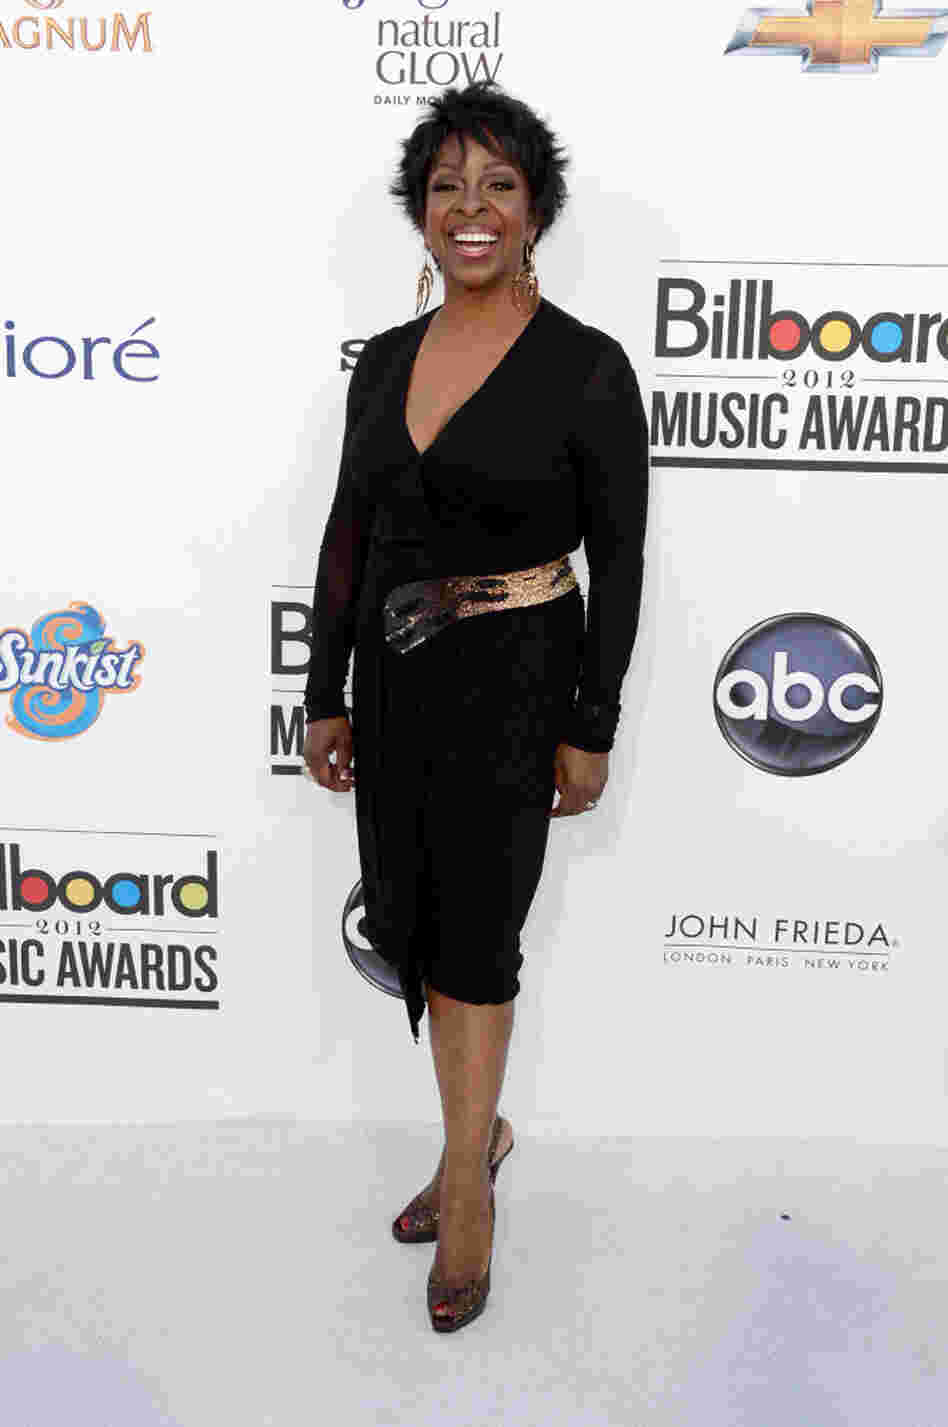 Singer Gladys Knight arrives at the 2012 Billboard Music Awards held Sunday night.